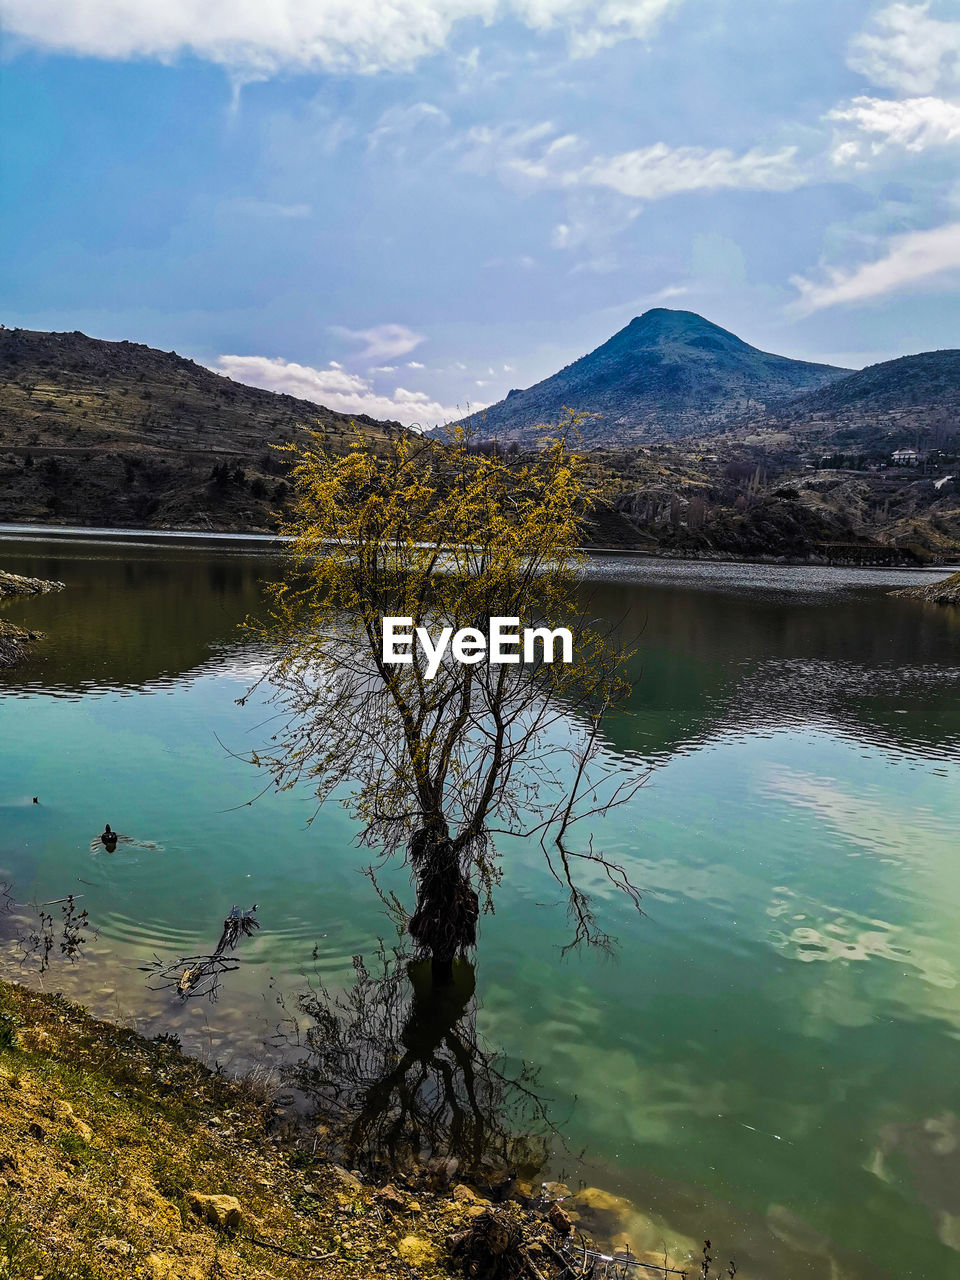 mountain, water, lake, reflection, scenics - nature, beauty in nature, sky, tranquility, tranquil scene, cloud - sky, nature, non-urban scene, day, tree, no people, plant, idyllic, landscape, mountain range, outdoors